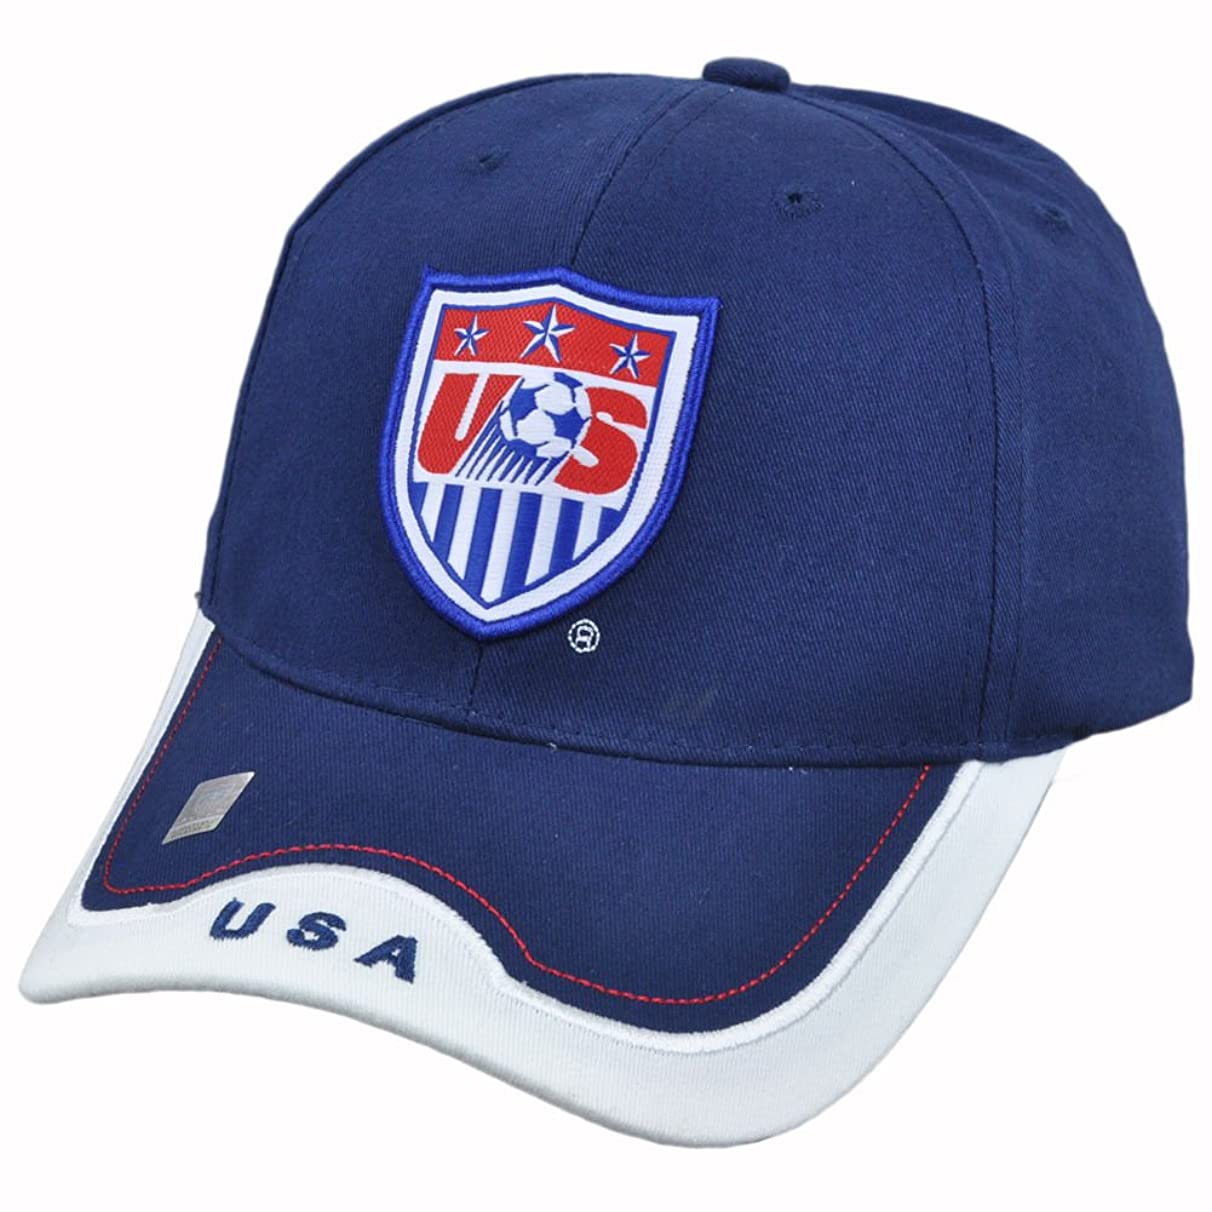 USA 2014 Team Patch Navy Bent Brim Adjustable Buckle Hat / Cap